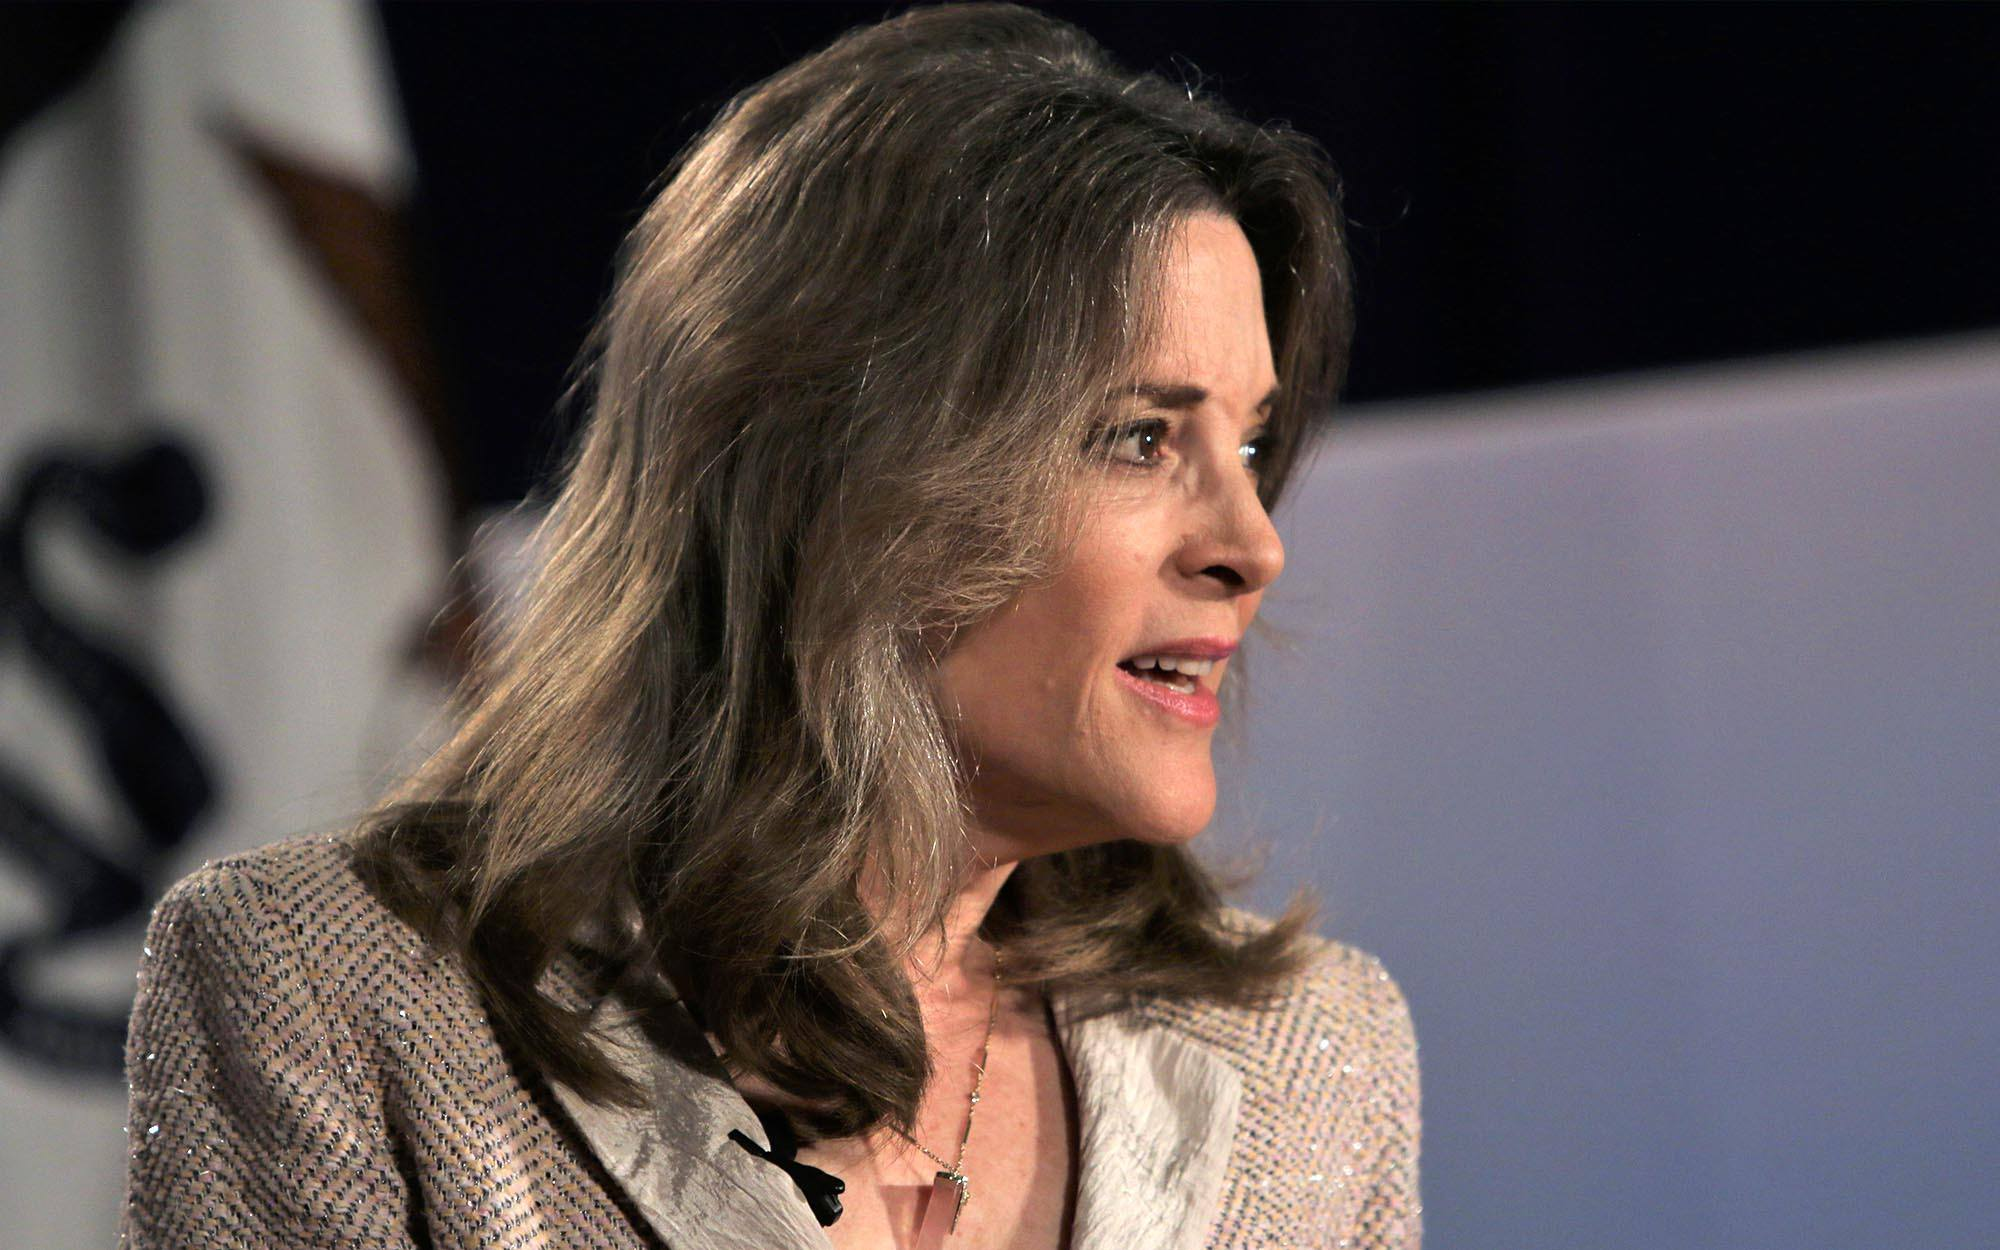 Marianne Williamson Vows to Remove Andrew Jackson's Portrait if She's Elected President